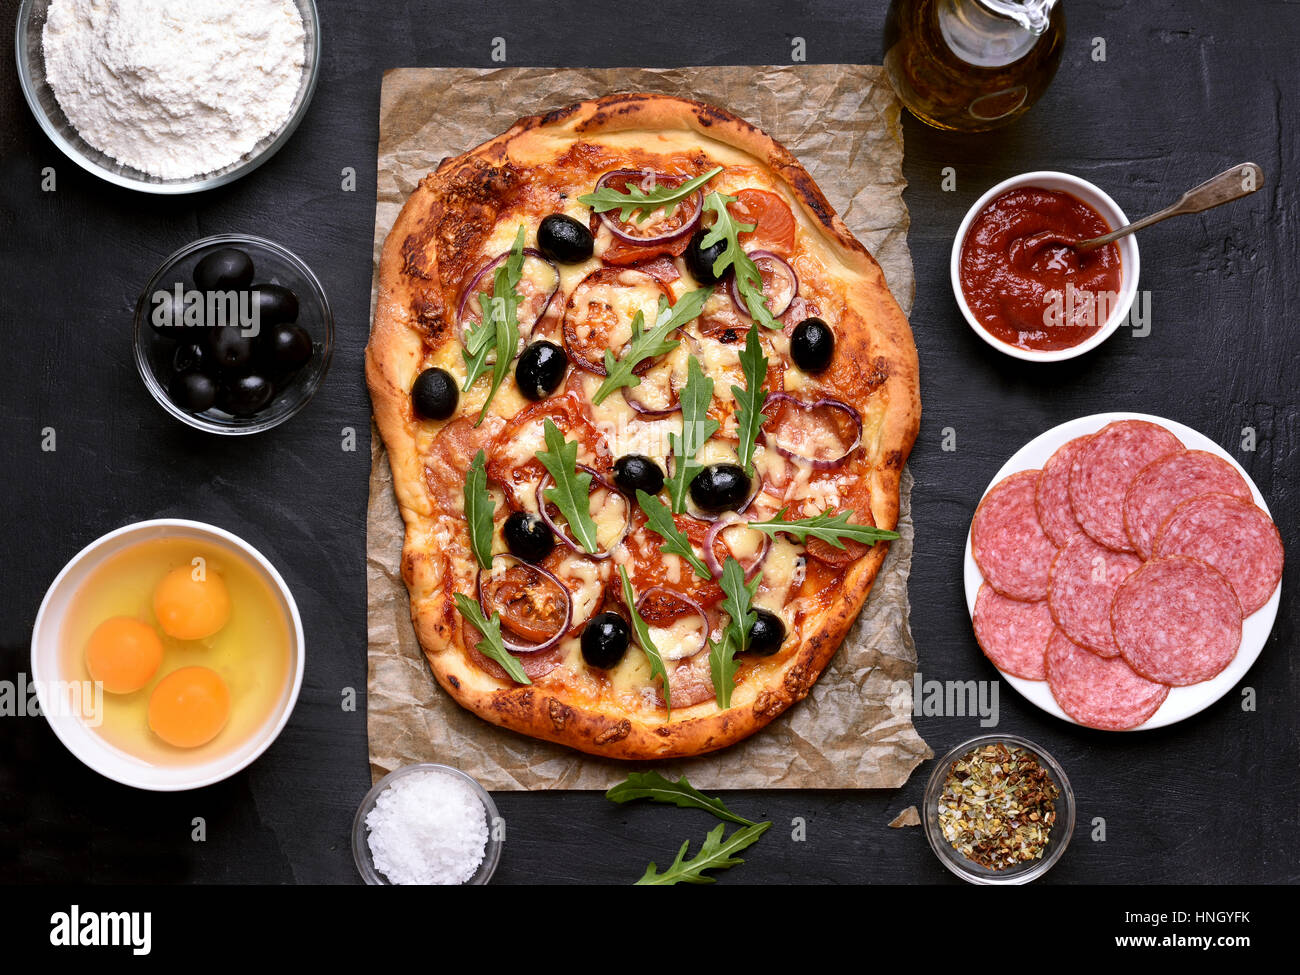 Homemade pizza and ingredients on dark background, top view - Stock Image